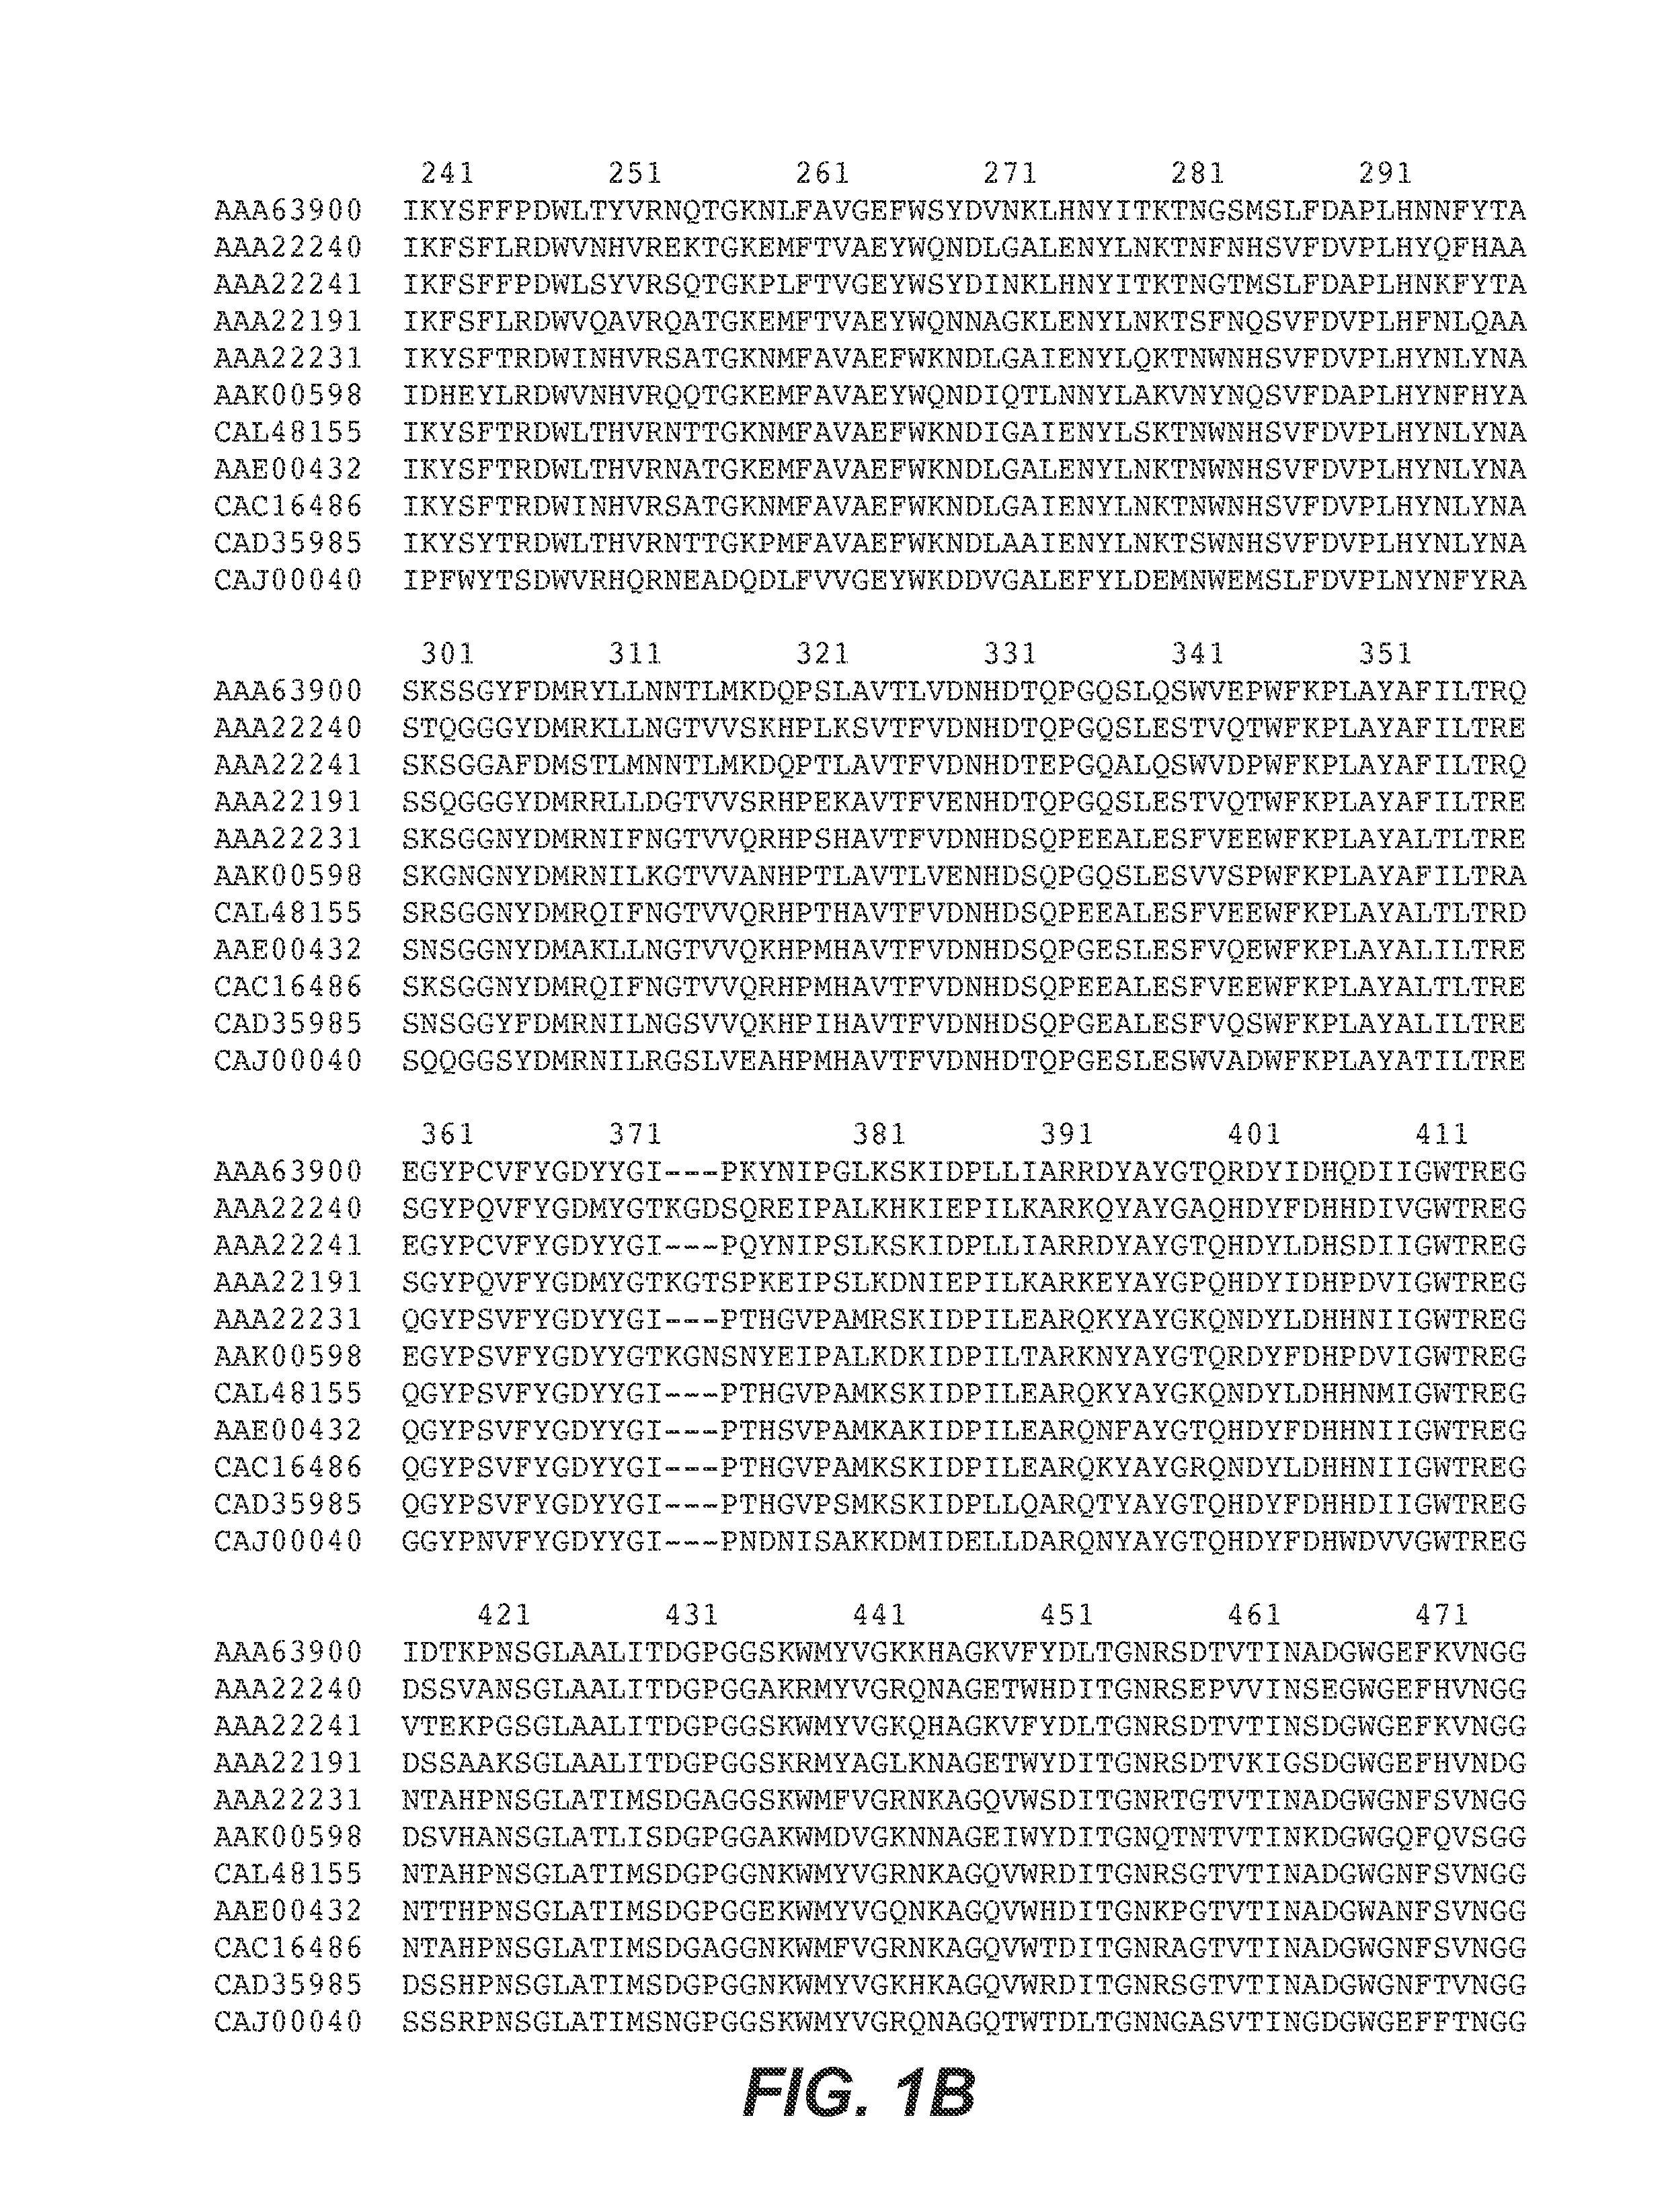 US20150087573A1 - Compositions and Methods Comprising Alpha-Amylase